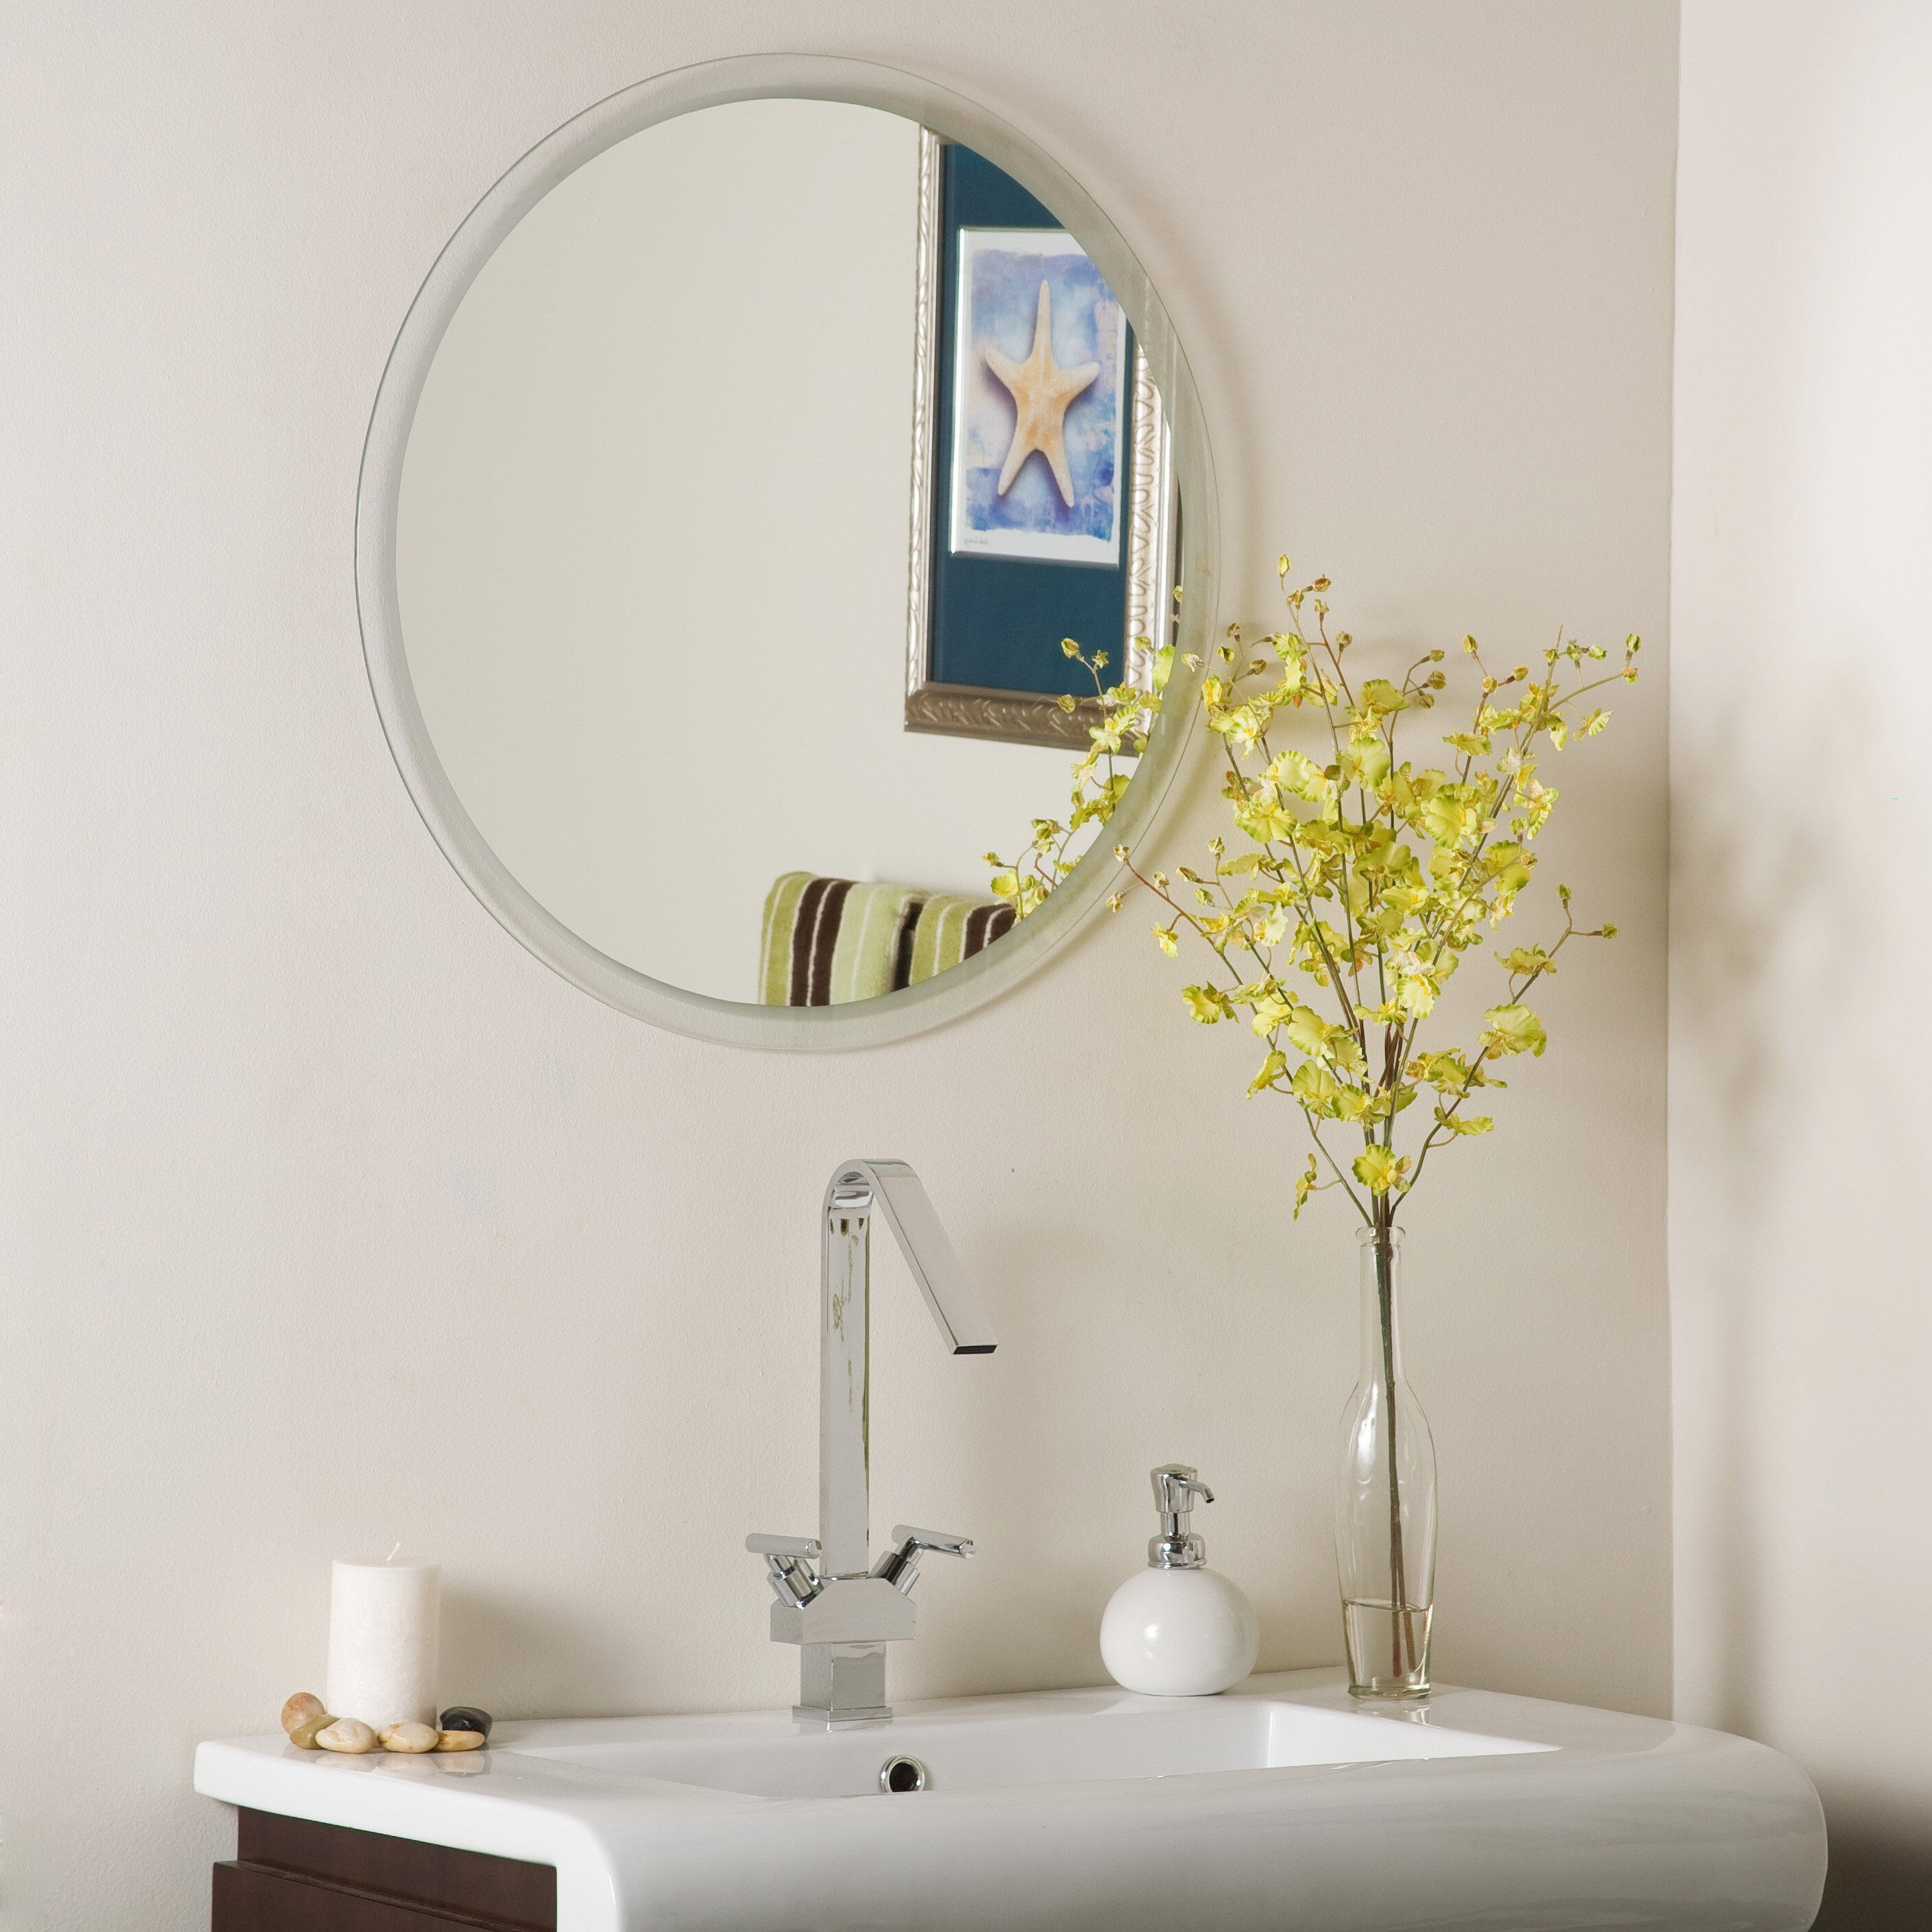 Frameless Bathroom Mirror Decor Wonderland Frameless Beveled Karnia Wall Mirror Reviews